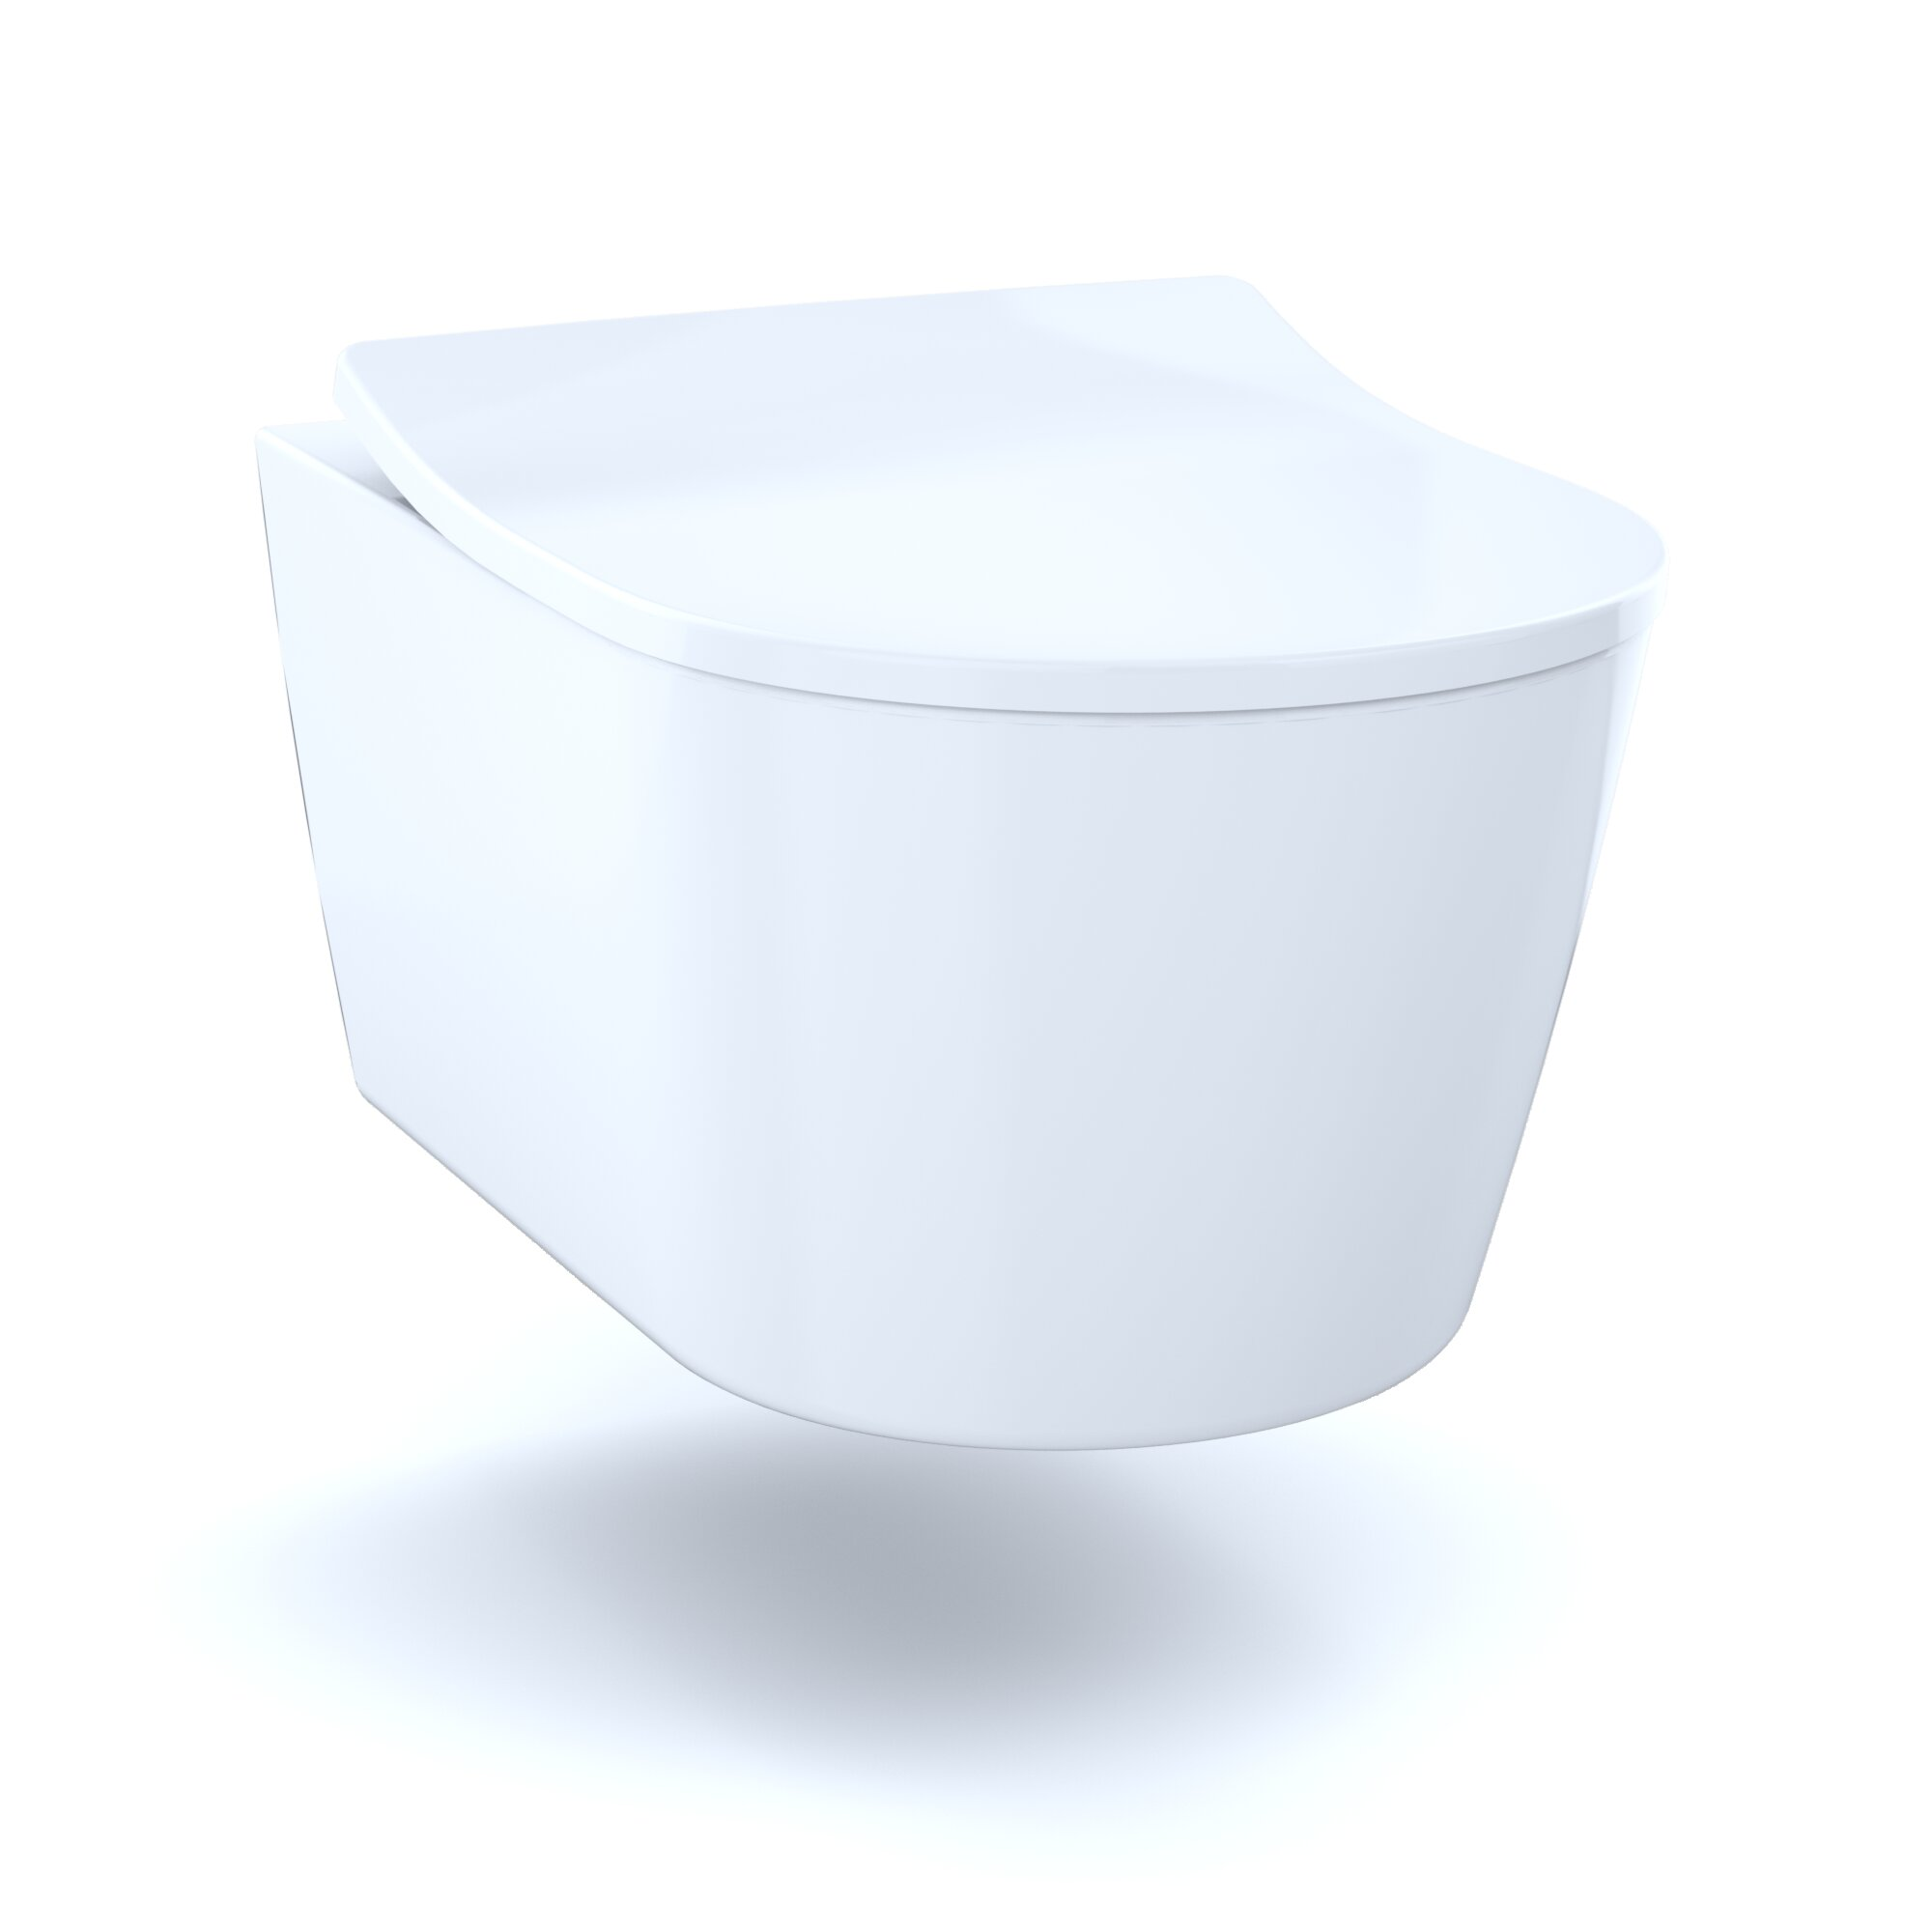 Excellent Toto Rp Dual Flush Elongated Wall Hung Toilet Seat Machost Co Dining Chair Design Ideas Machostcouk